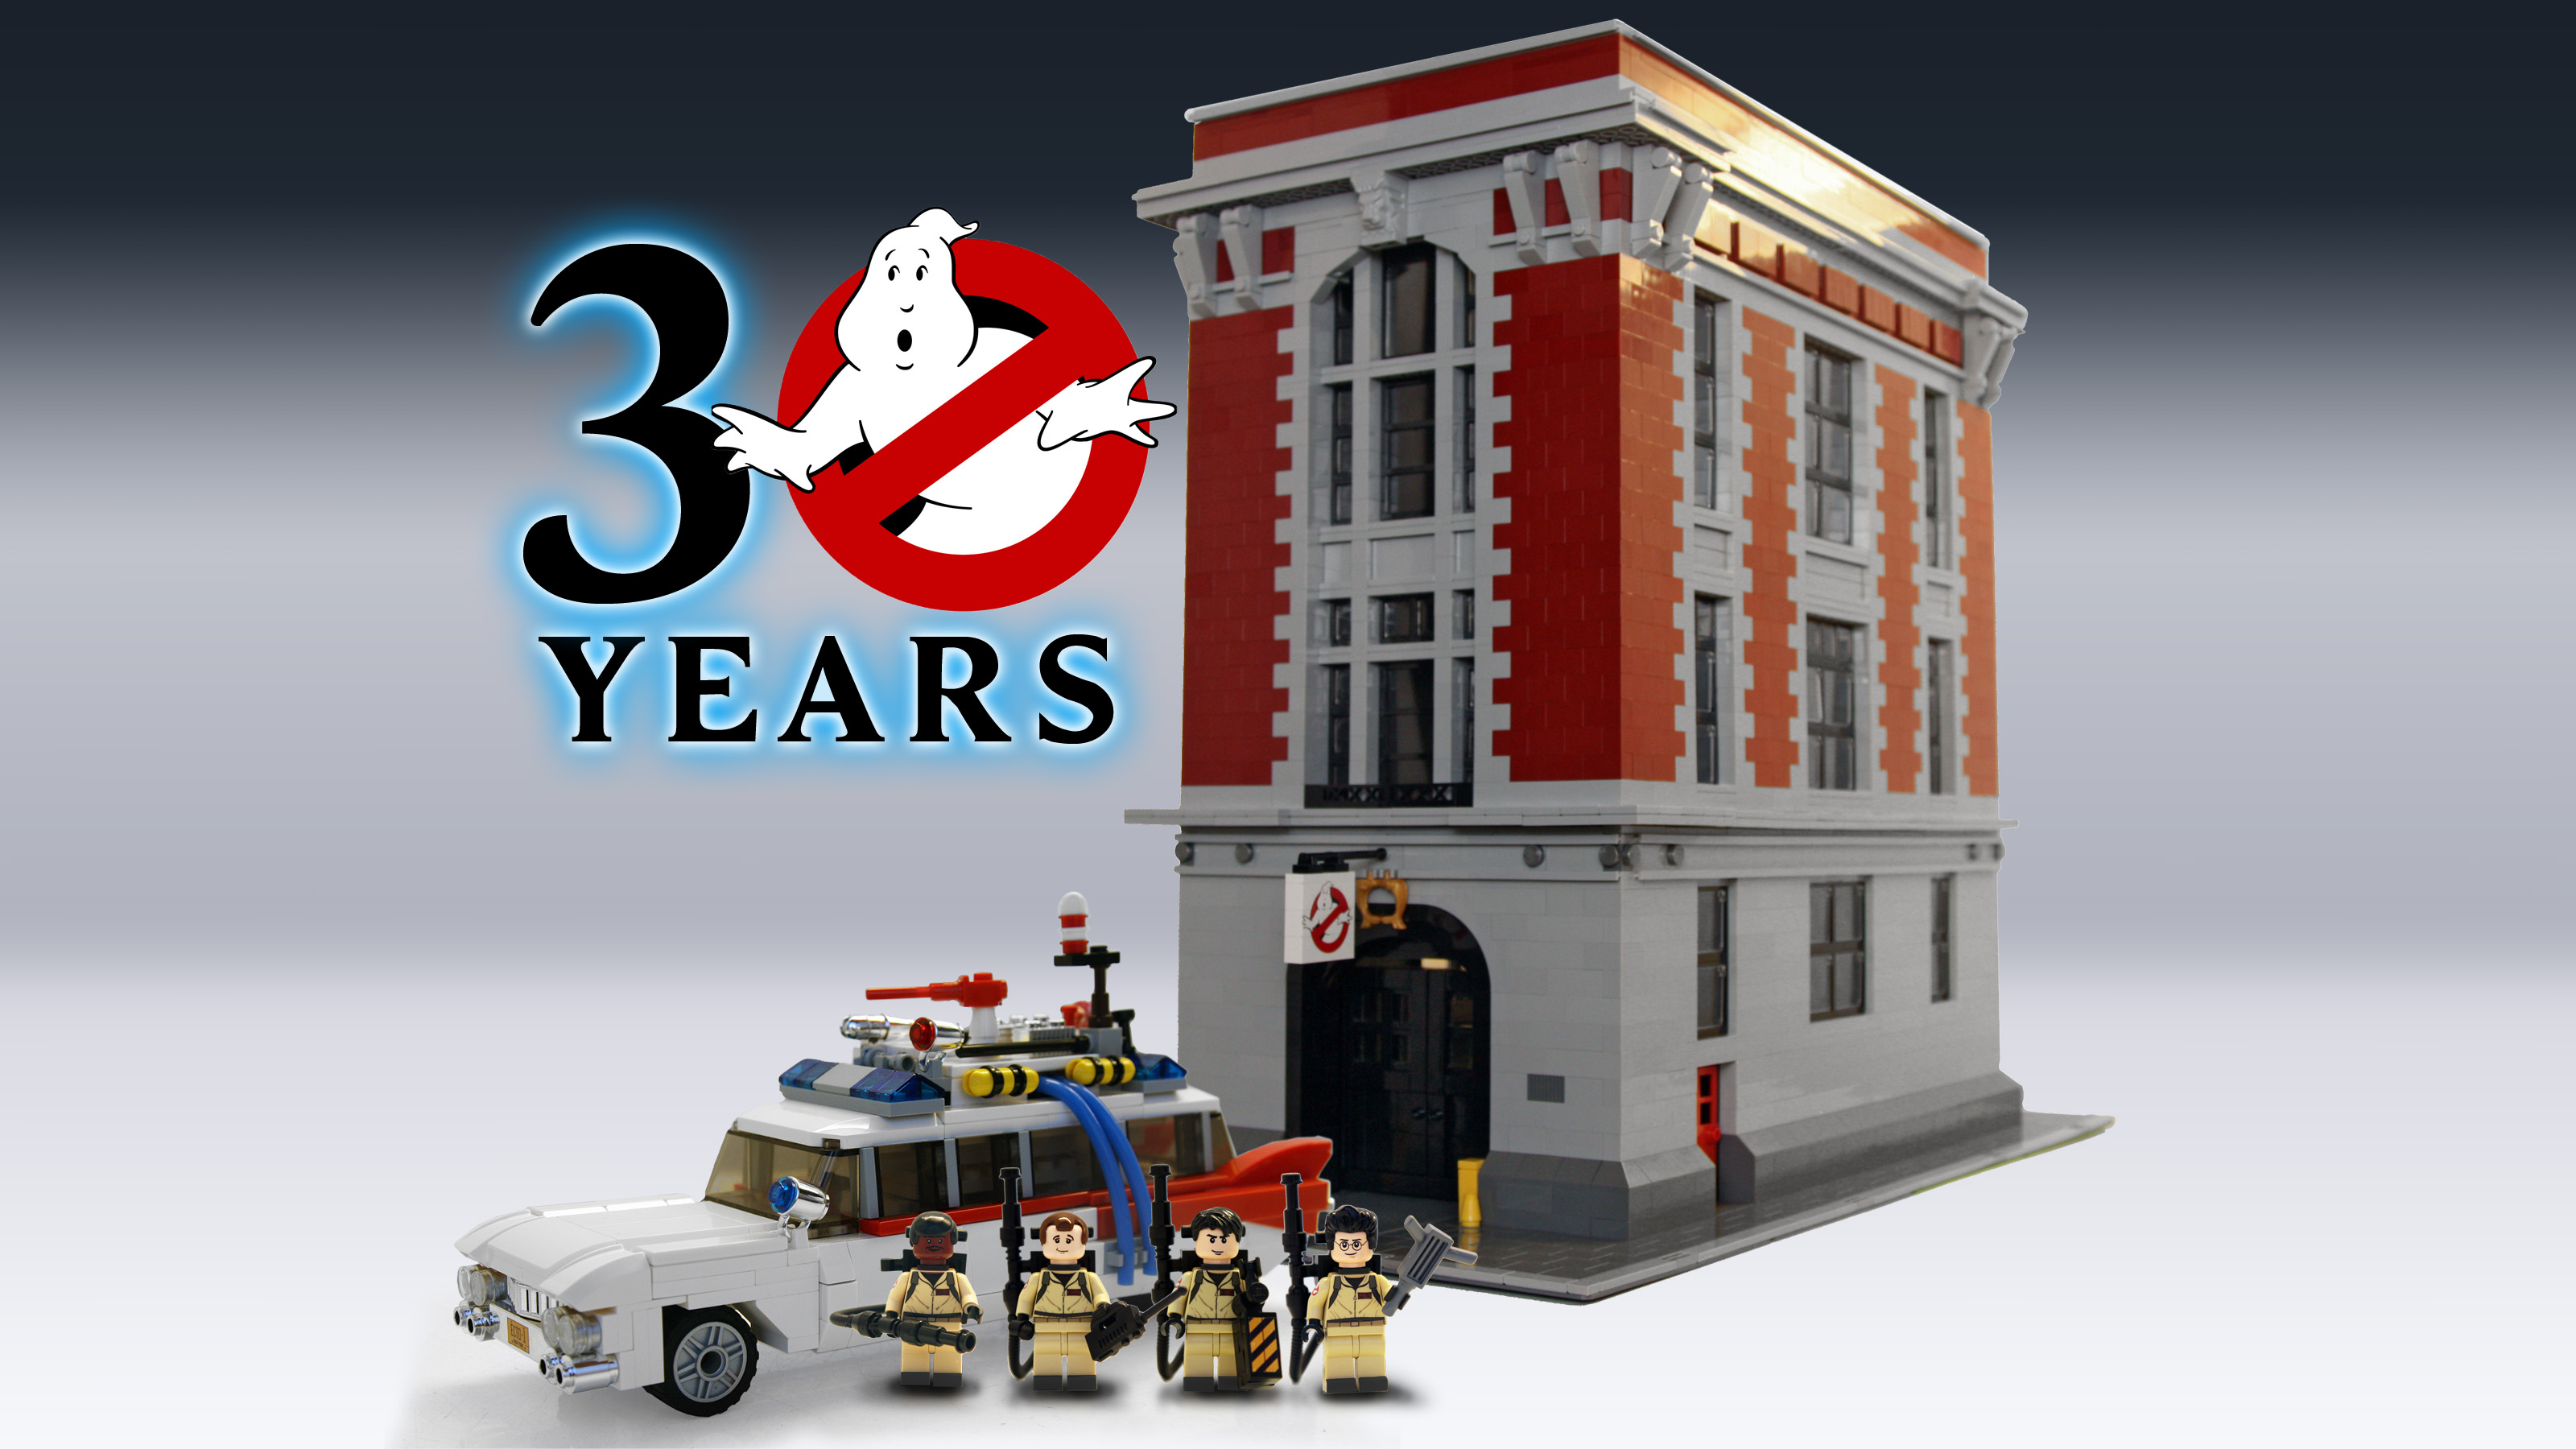 Lego: Silly modern faces, cool retro sets | R/C Toy Memories